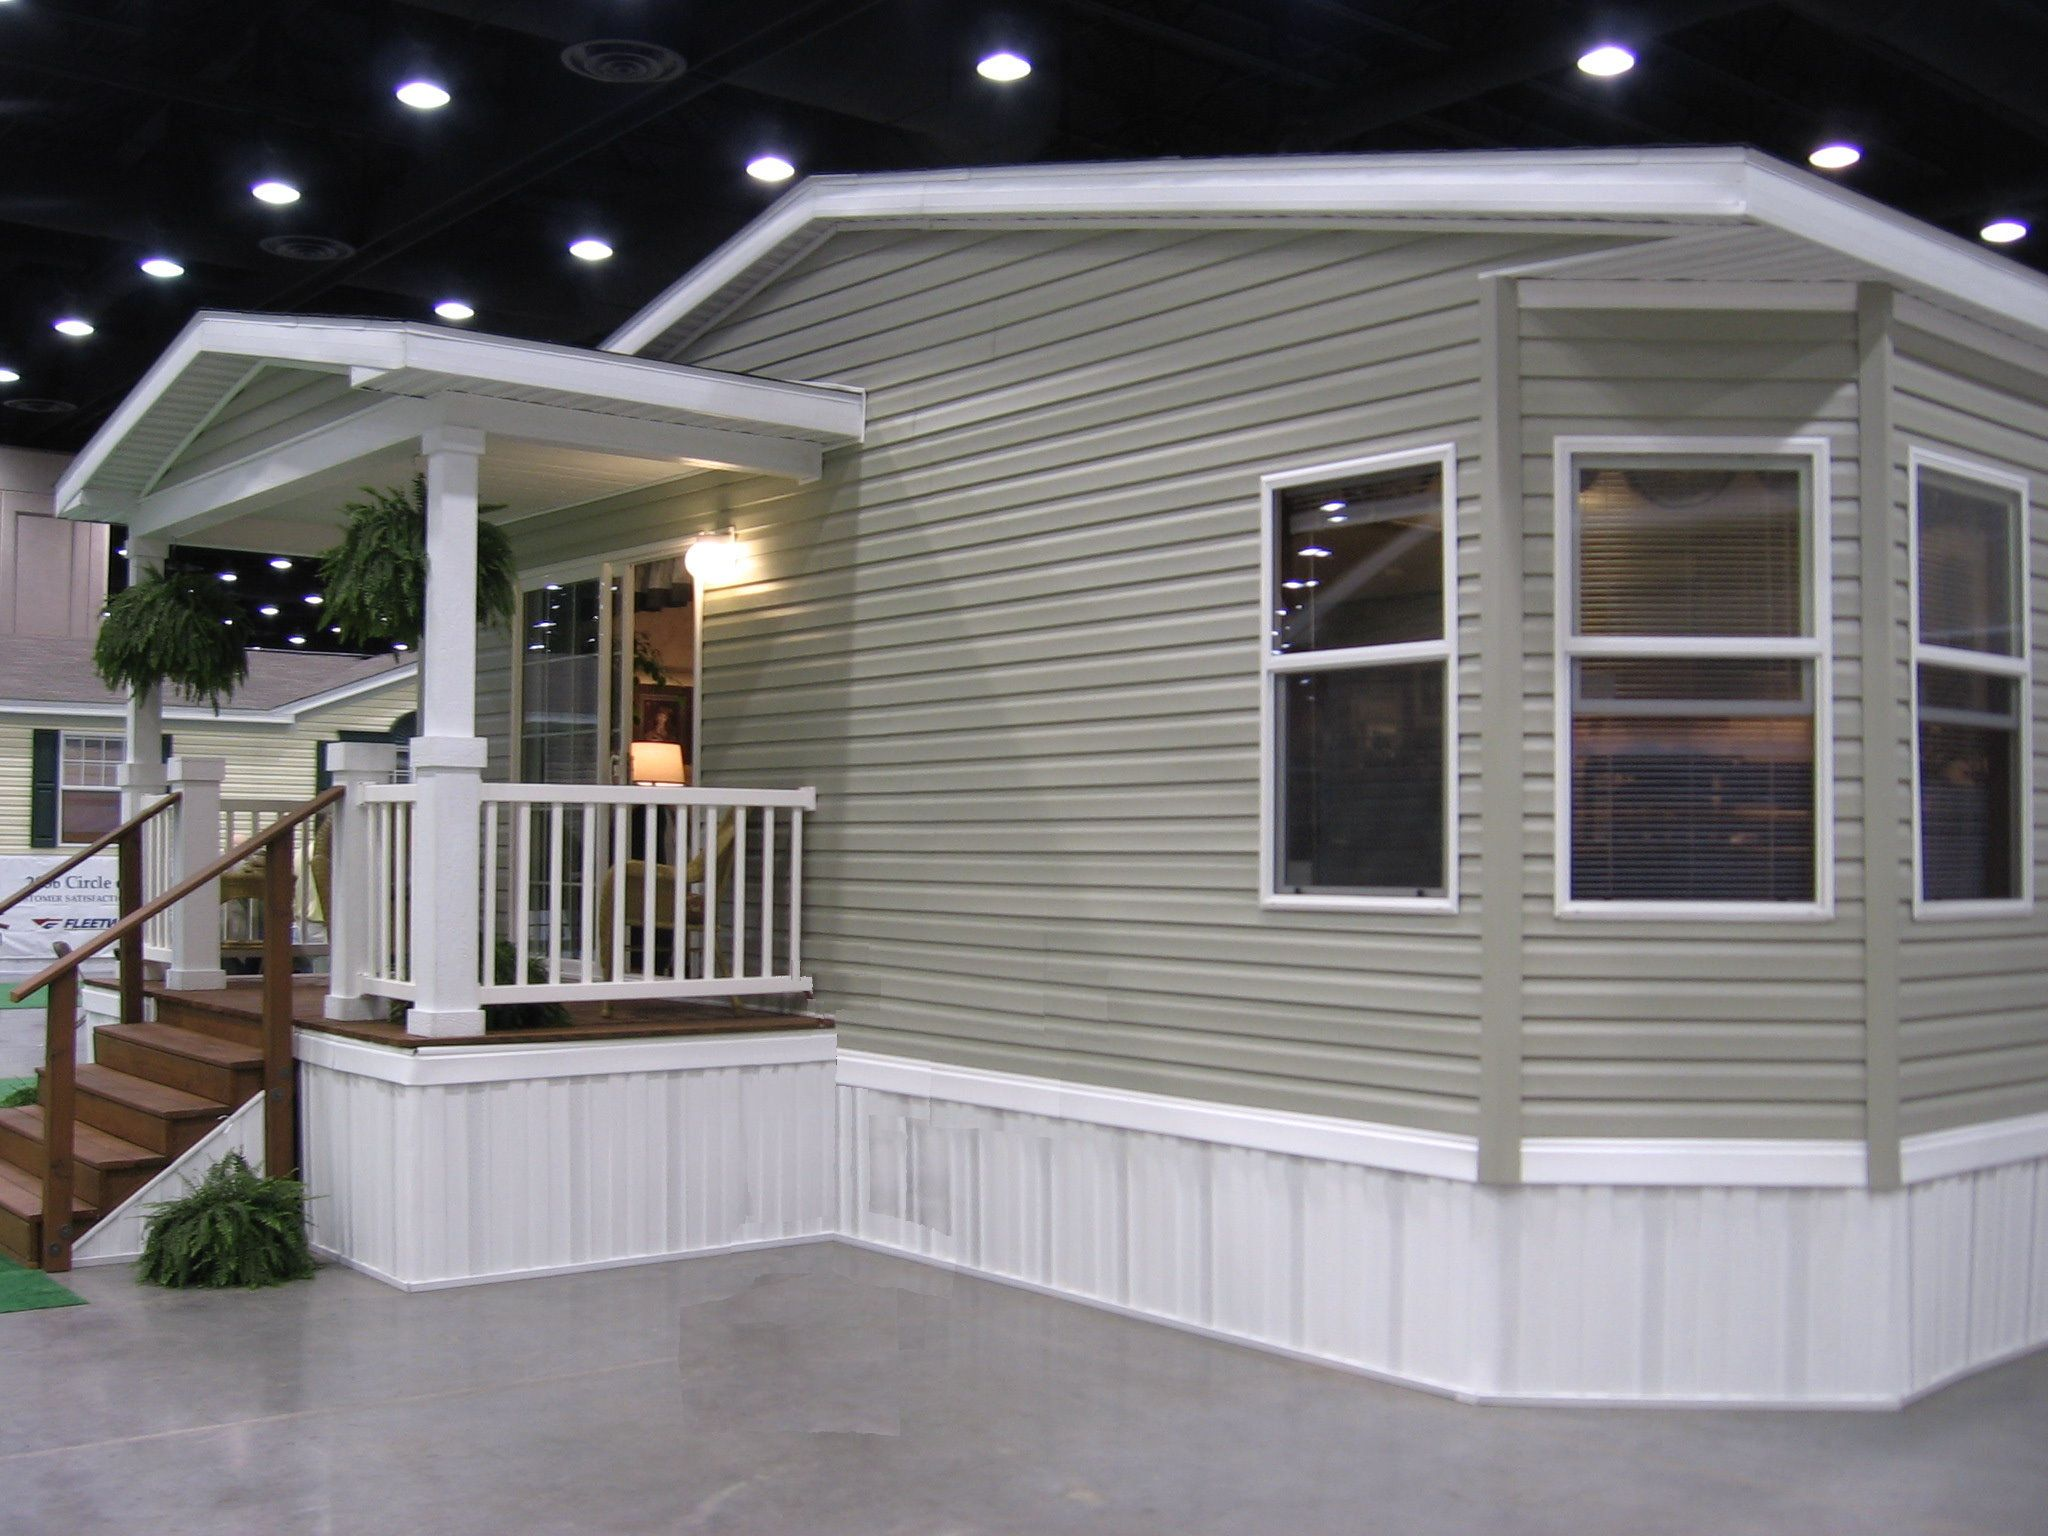 Lovely Mobile Home Deck Ideas | PORCH DESIGNS FOR MOBILE HOMES « Home Plans U0026 Home  Design